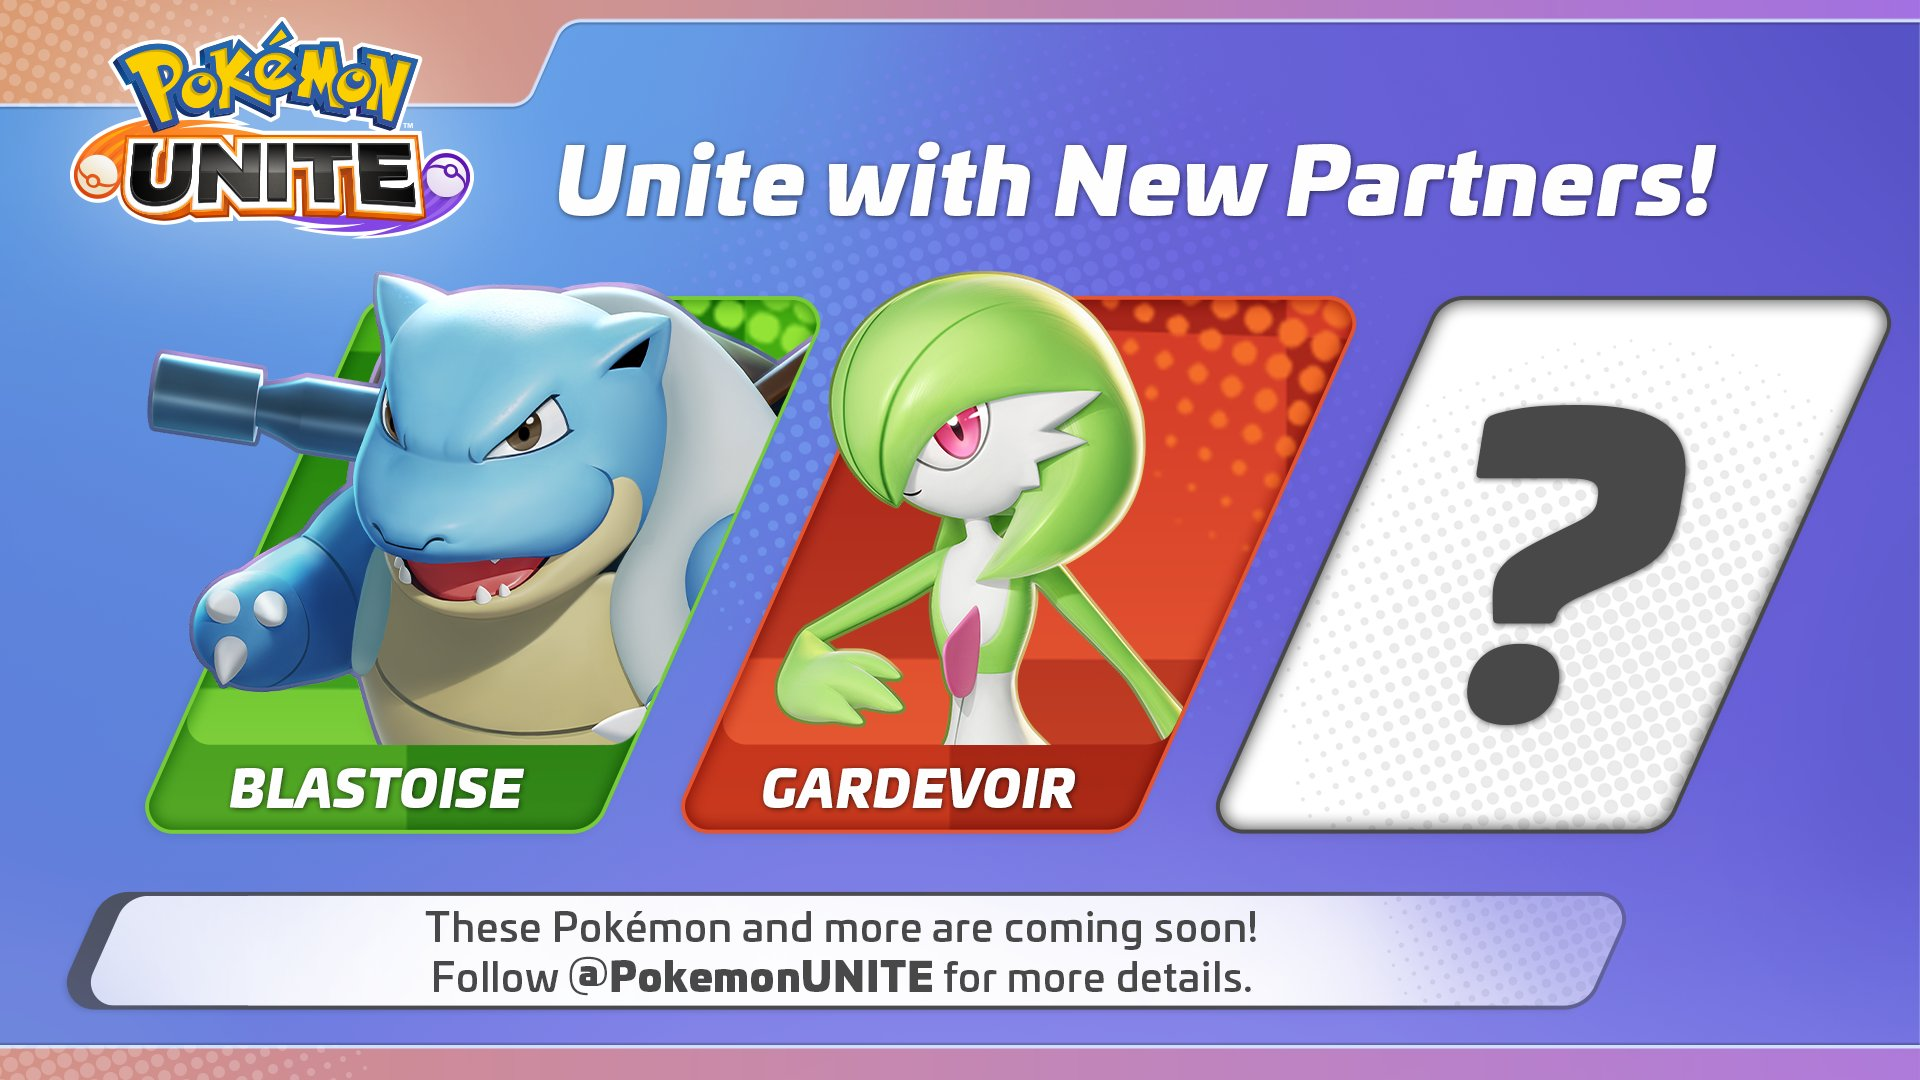 Pokemon Unite On Twitter Blastoise Gardevoir And Other Pokemon Also Can T Wait To Join You On Aeos Island They Won T Be Battle Ready At Launch So Stay Tuned For More Details On When